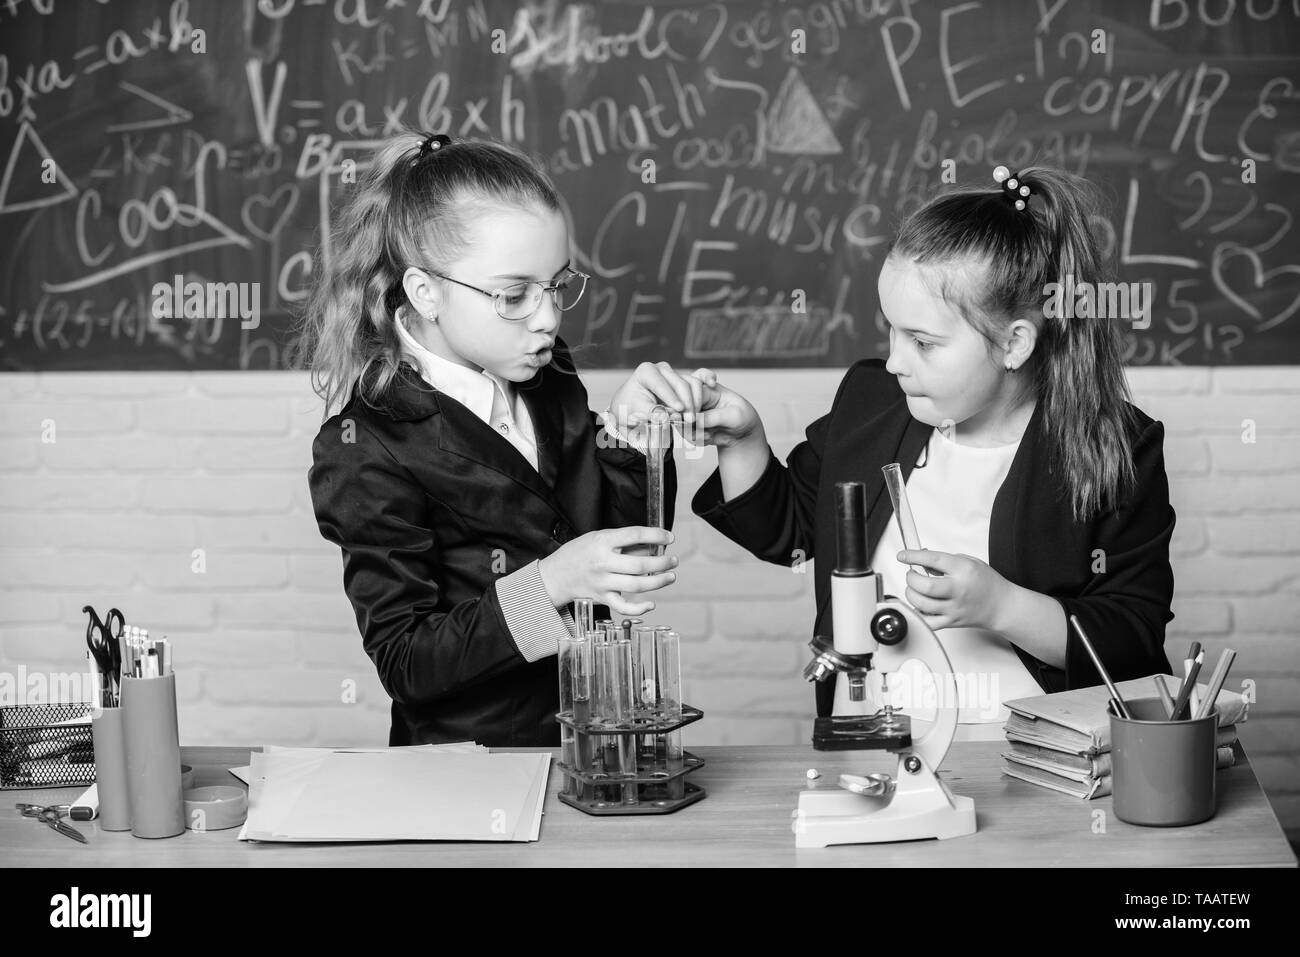 Make studying chemistry interesting educational experiment concept microscope and test tubes on table